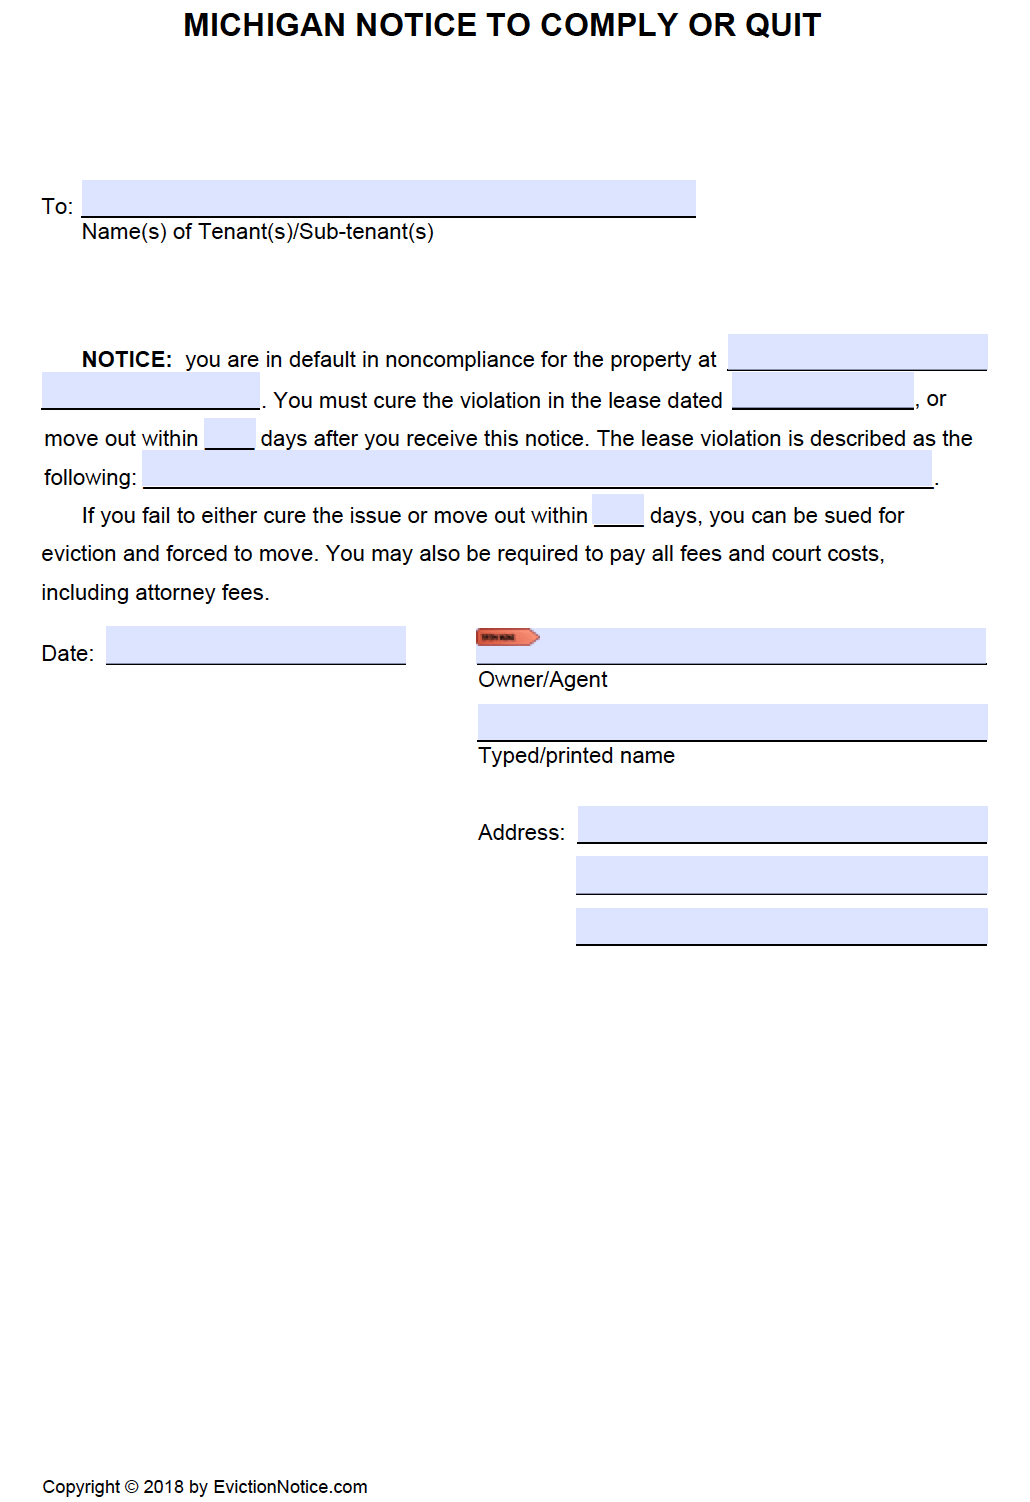 free michigan notice to comply or quit